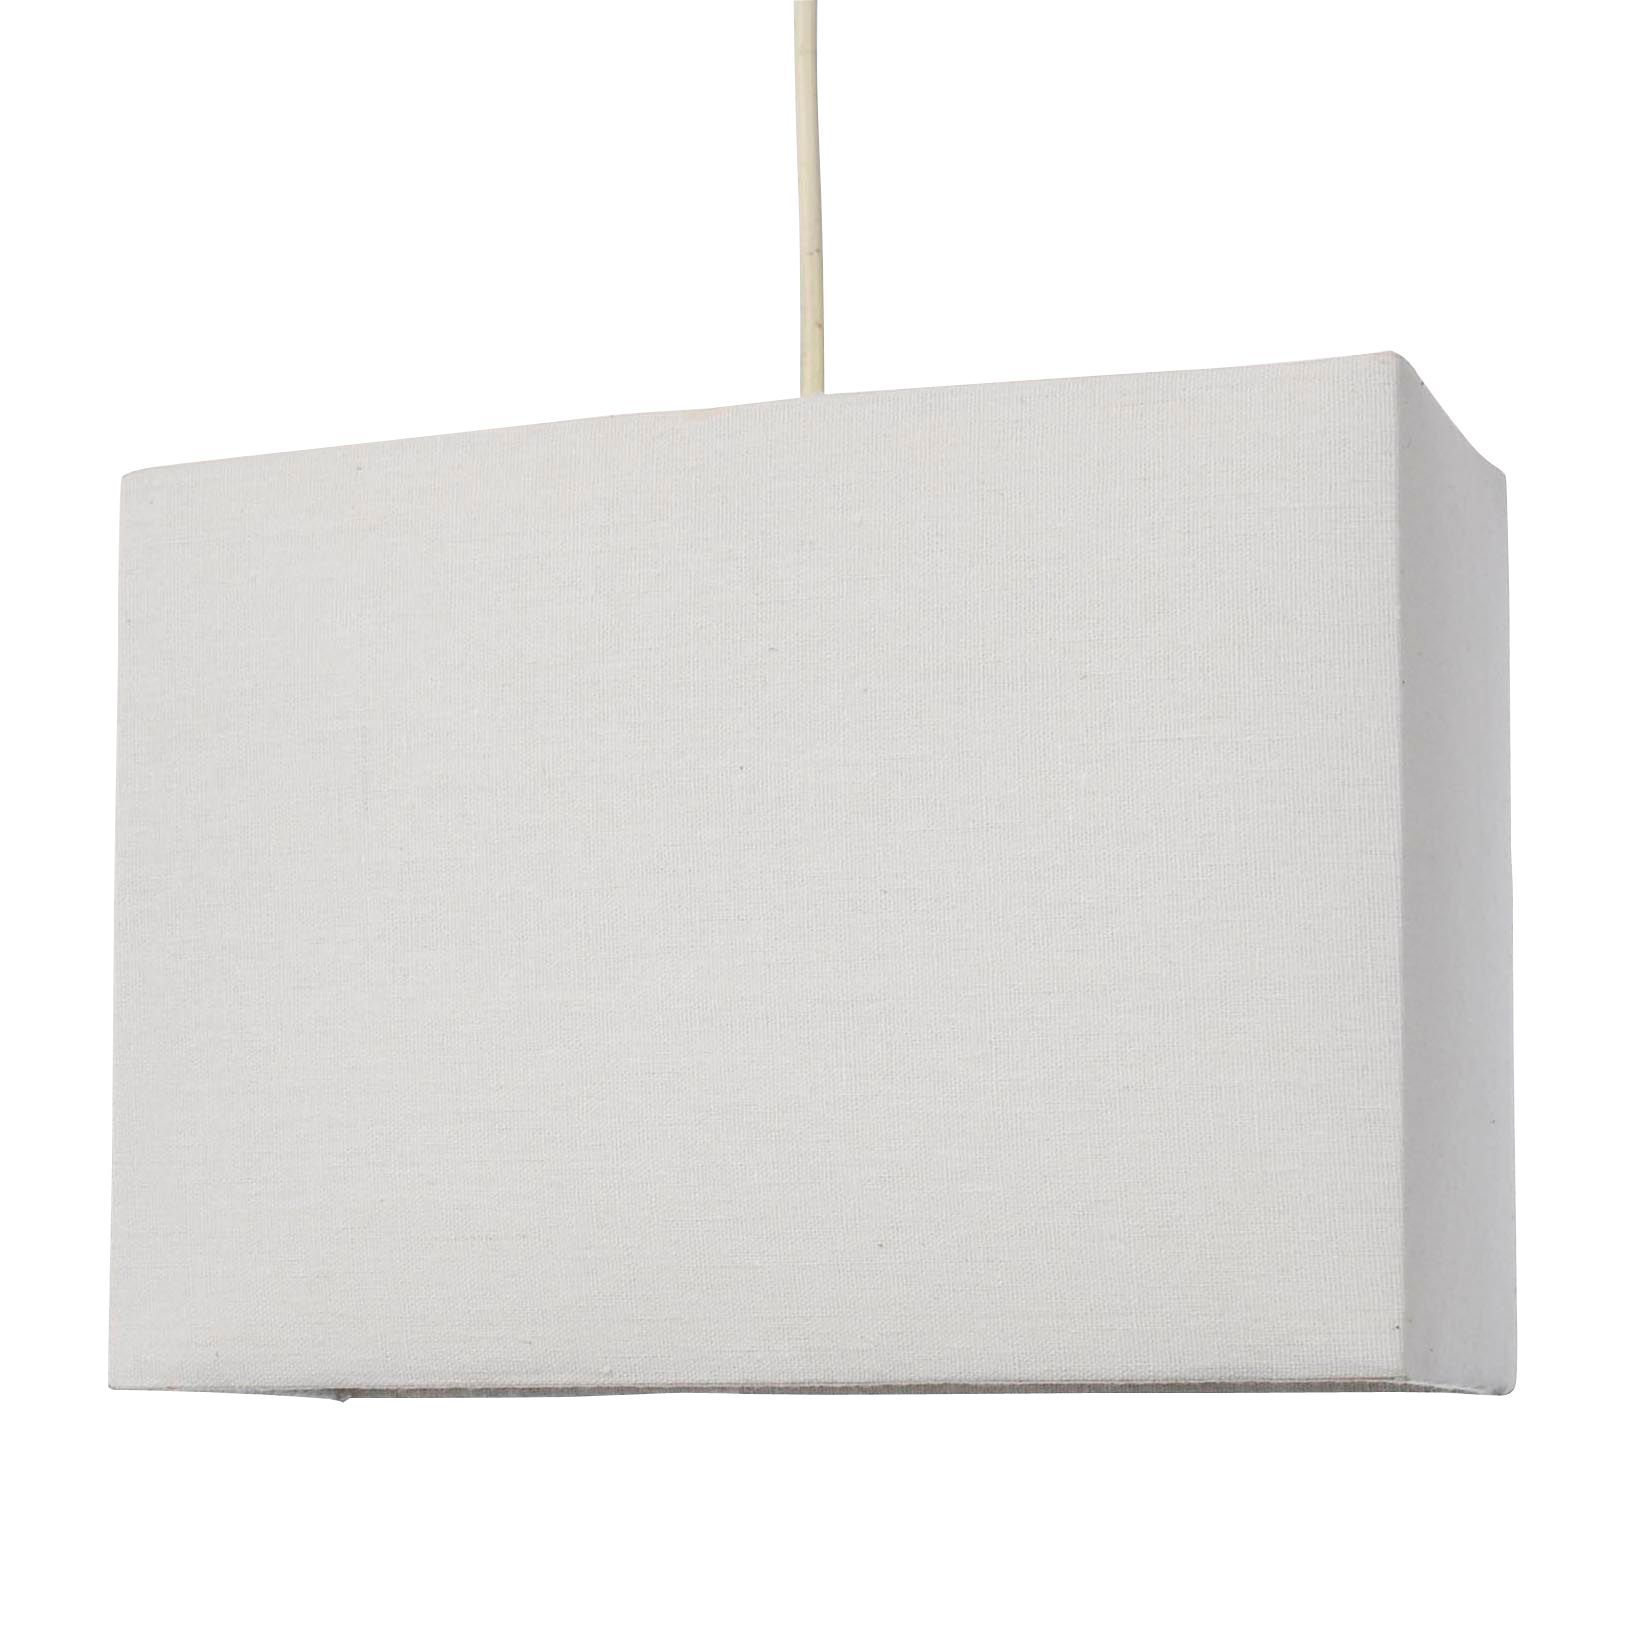 colours alban white rectangle lamp shade d28cm departments diy at bu0026q - Rectangular Lamp Shades